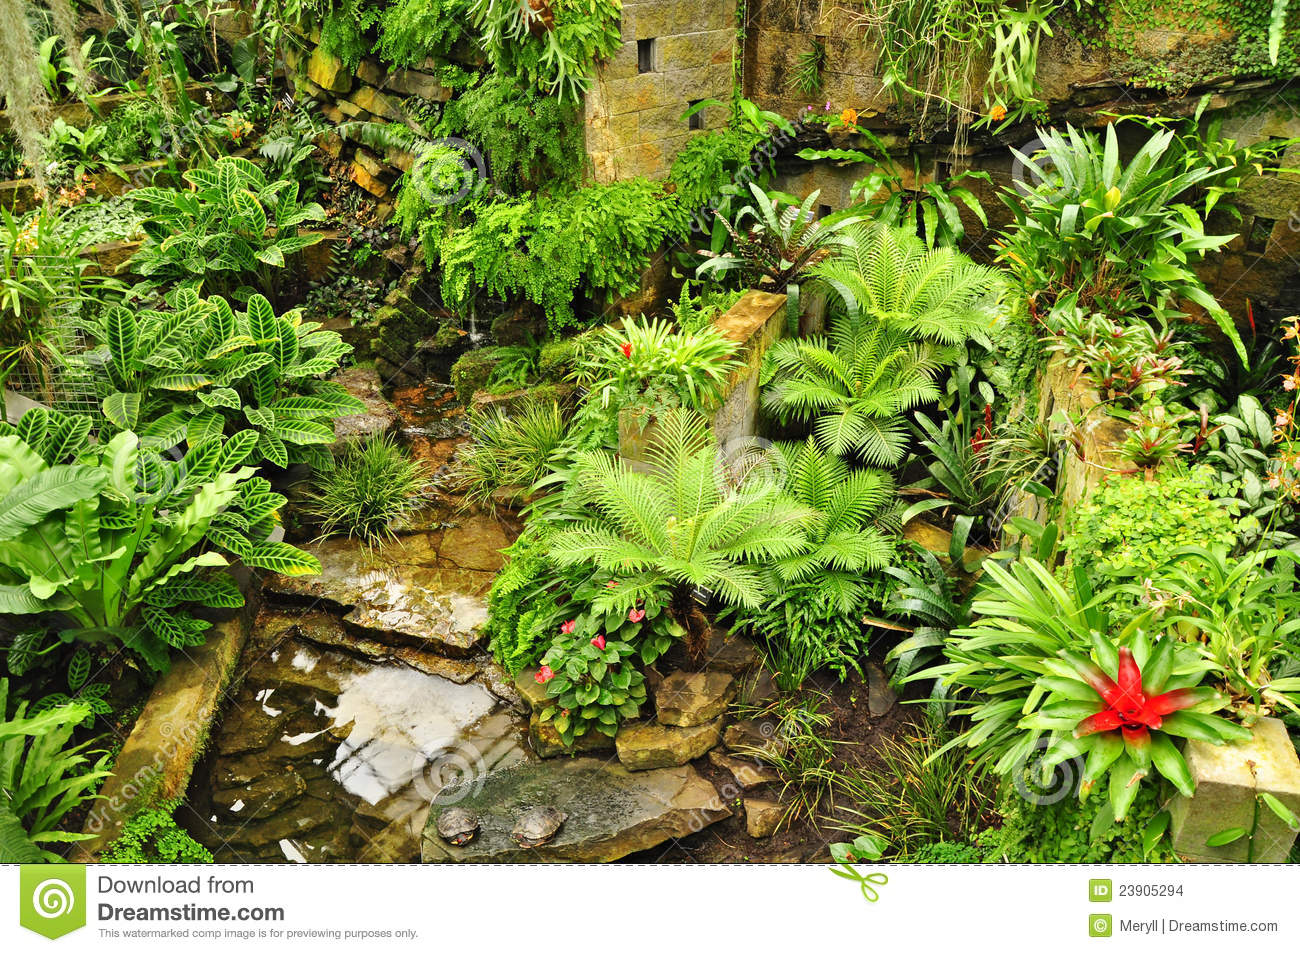 fotos jardins tropicais:Green Tropical Garden Plants